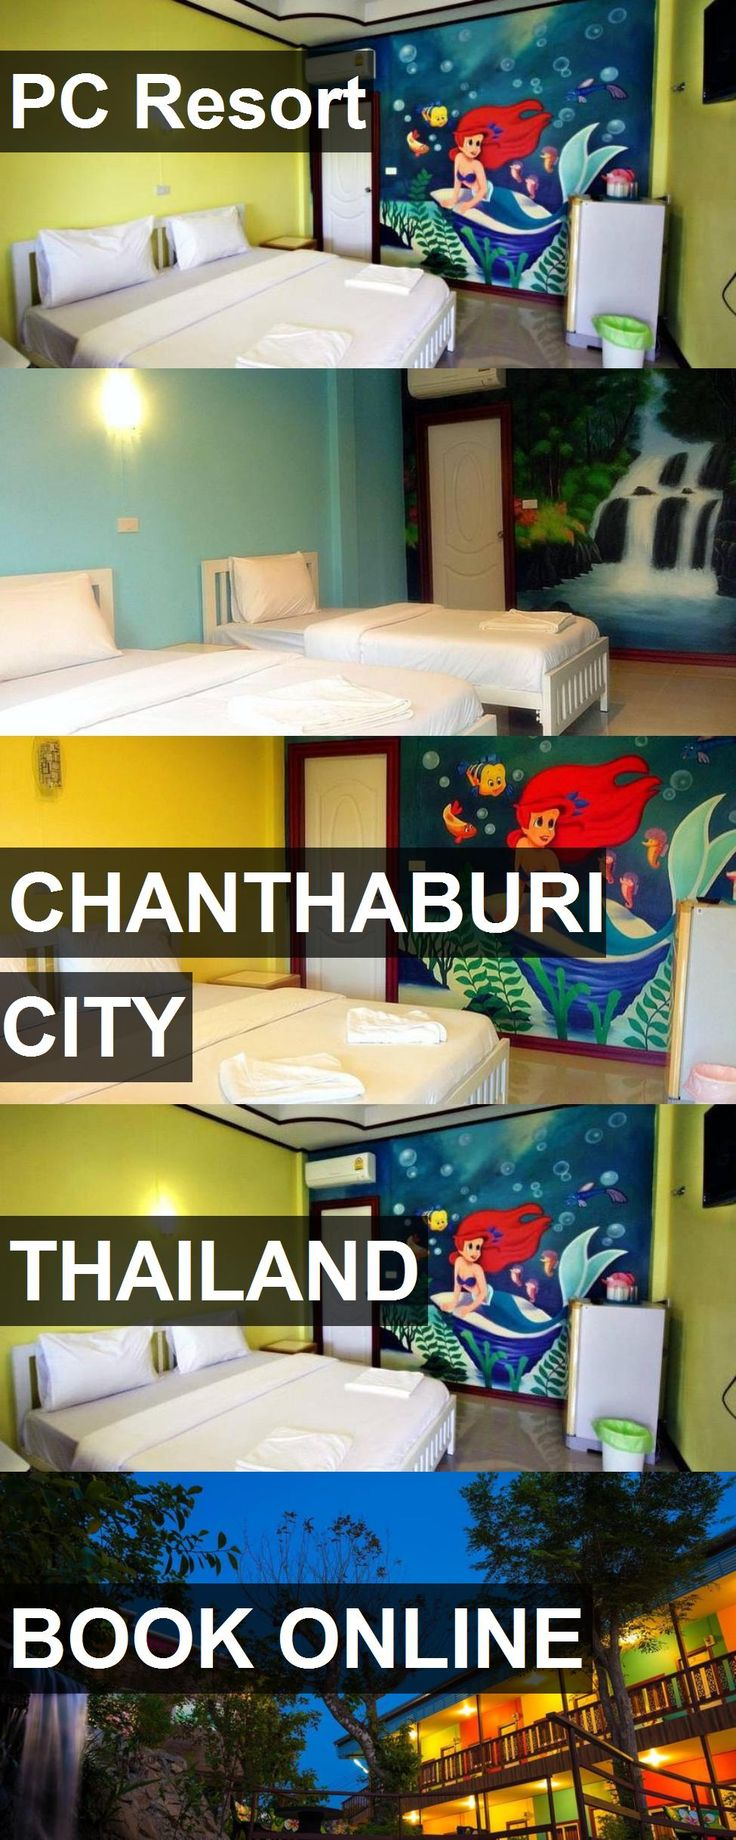 Hotel PC Resort in Chanthaburi City, Thailand. For more information, photos, reviews and best prices please follow the link. #Thailand #ChanthaburiCity #travel #vacation #hotel